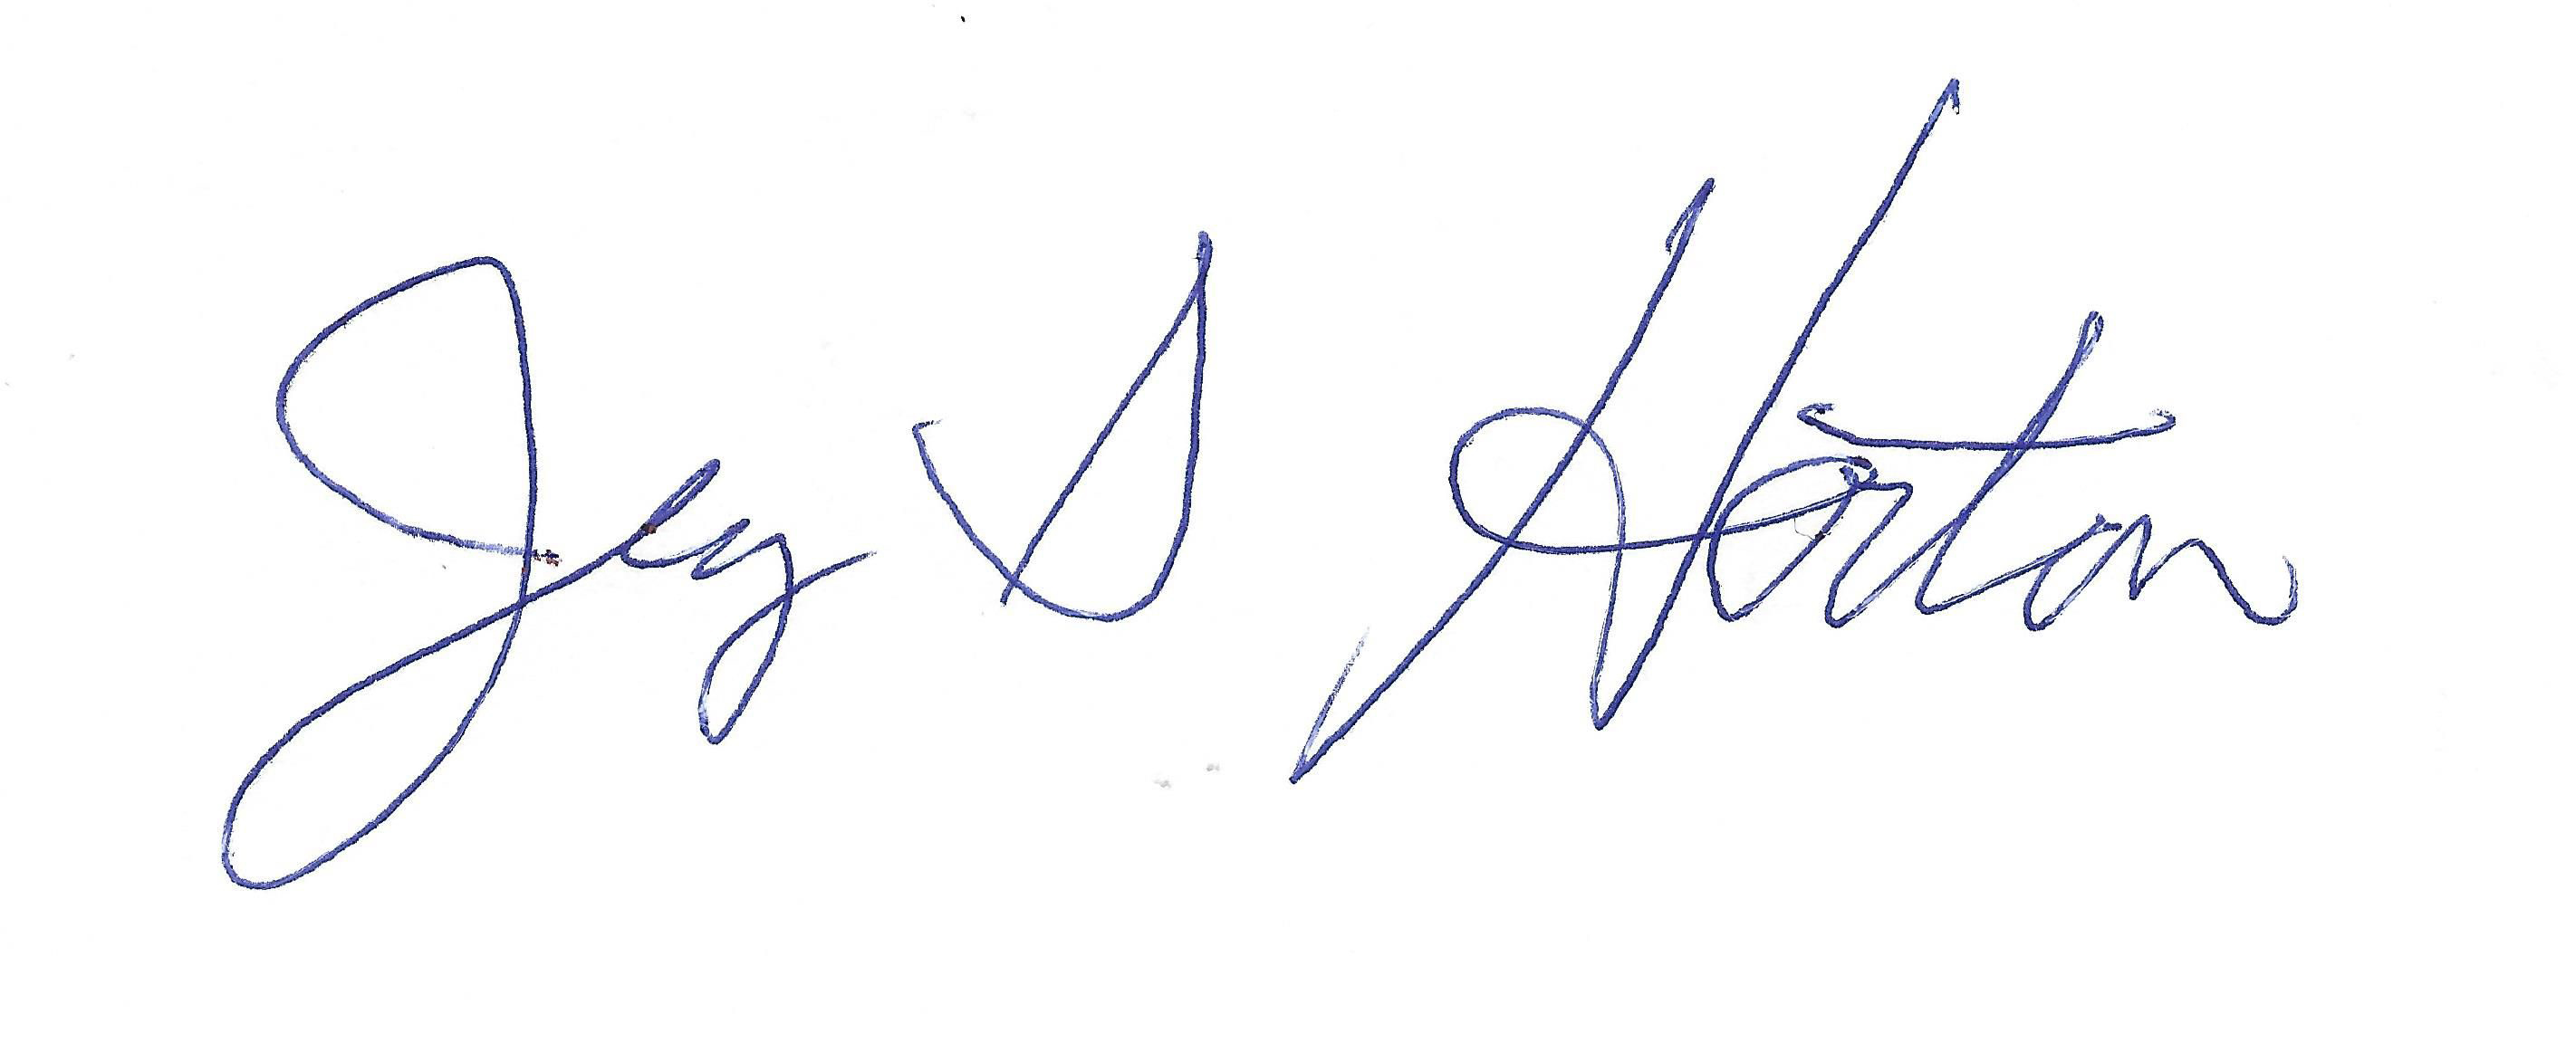 jerry s horton's Signature